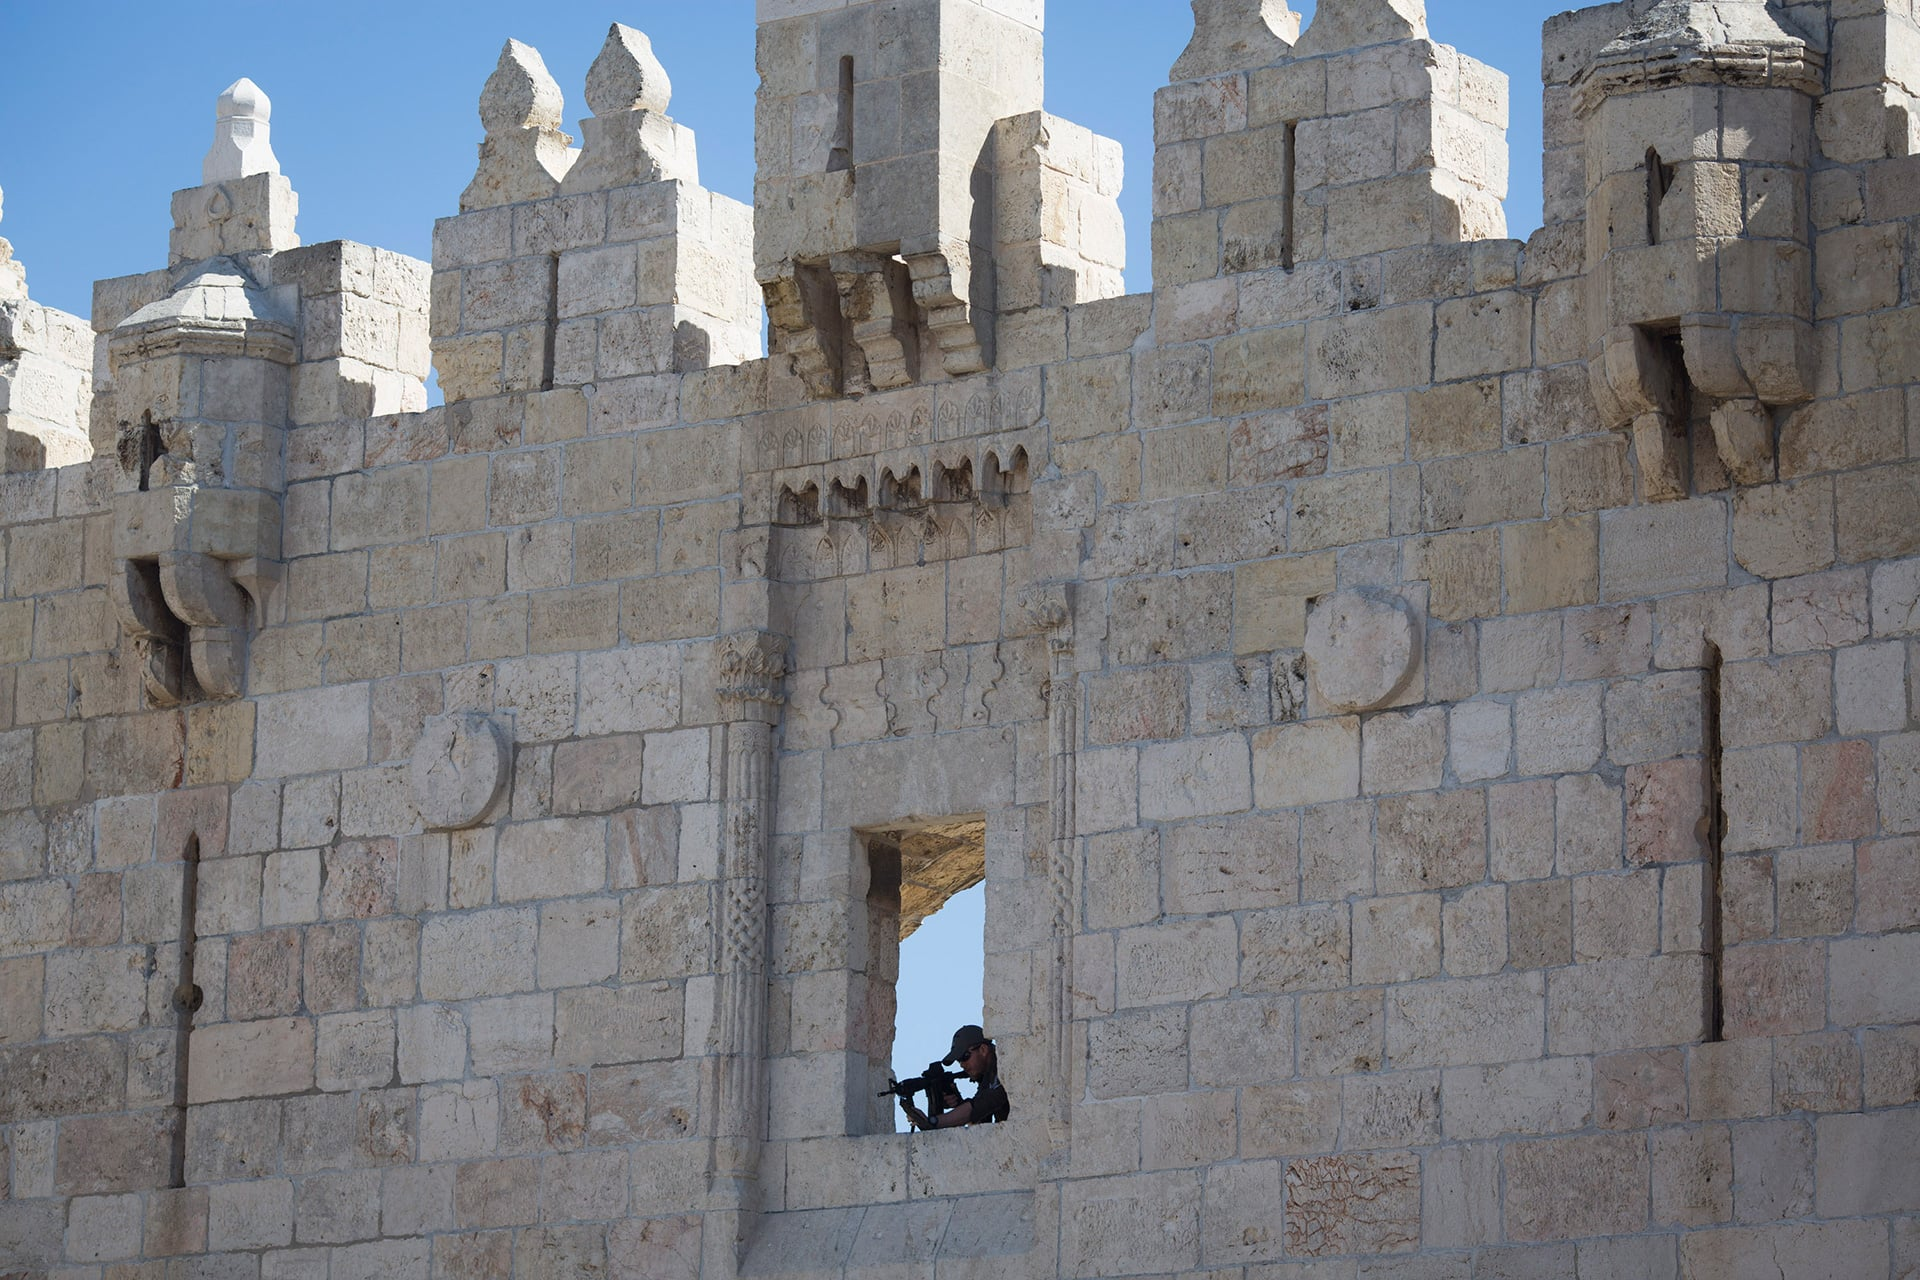 An Israeli anti-riot police sniper observes the surrounding from a wall of the Damascus Gate in Jerusalem's old city, February 17,  2016. (Photo: ActiveStills / Oren Ziv)